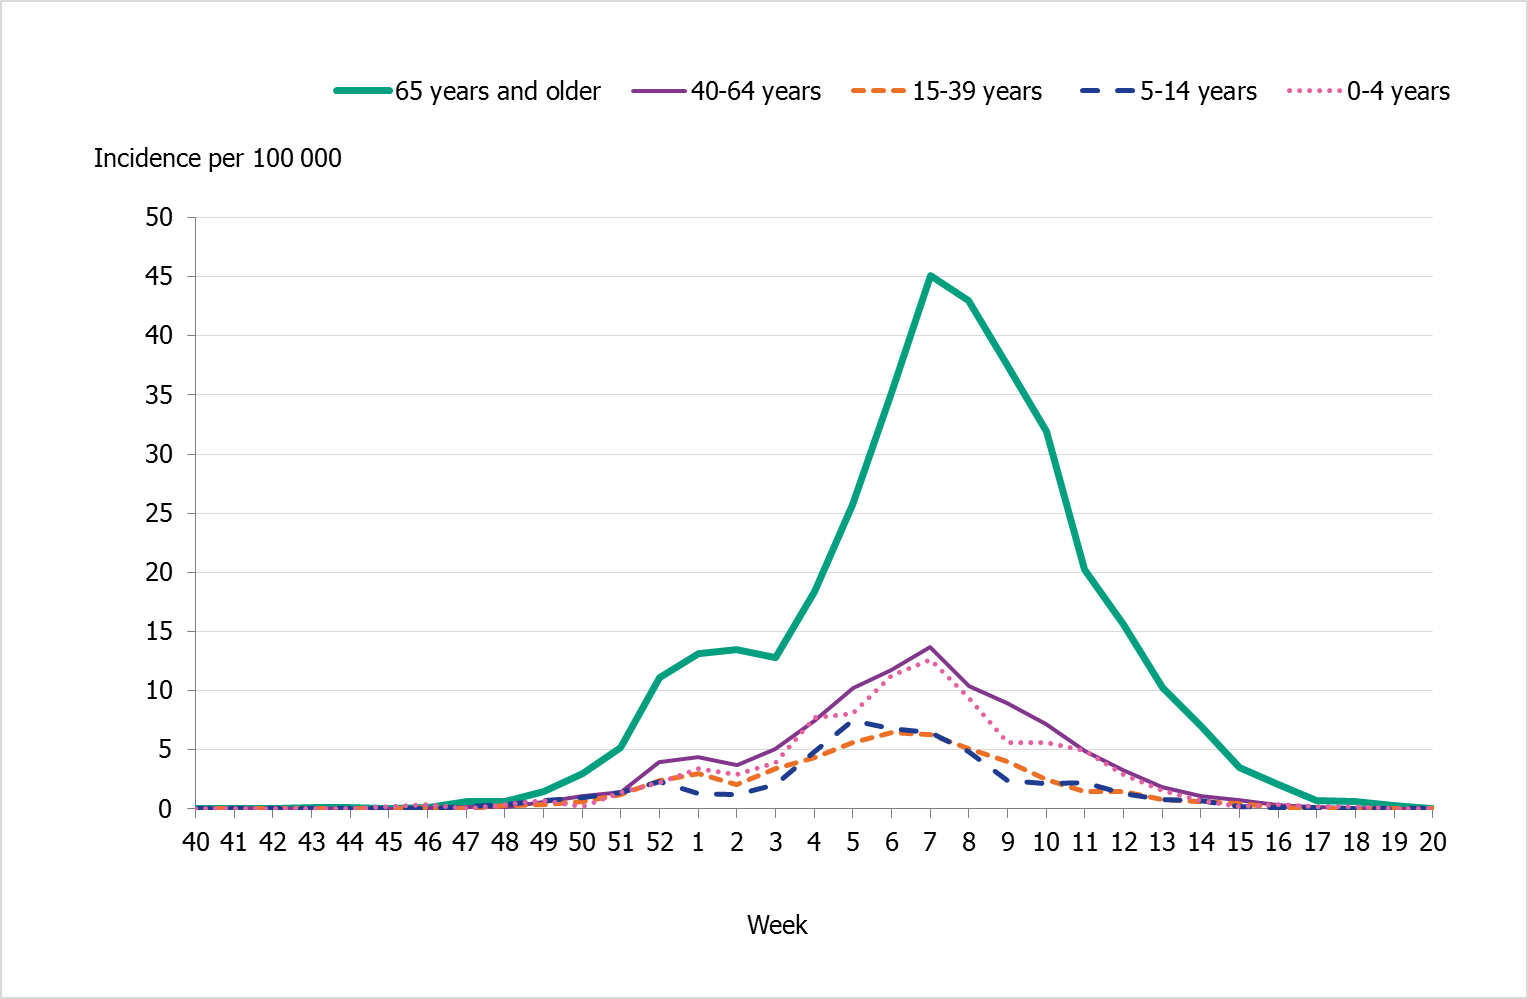 Weekly incidence of influenza B per age group in Sweden, 2017–2018 season. The line for those 65 years and older is by far the highest and reaches a peak at around 45 per 100,000, whereas the other age groups reach no higher than 14 per 100,000.